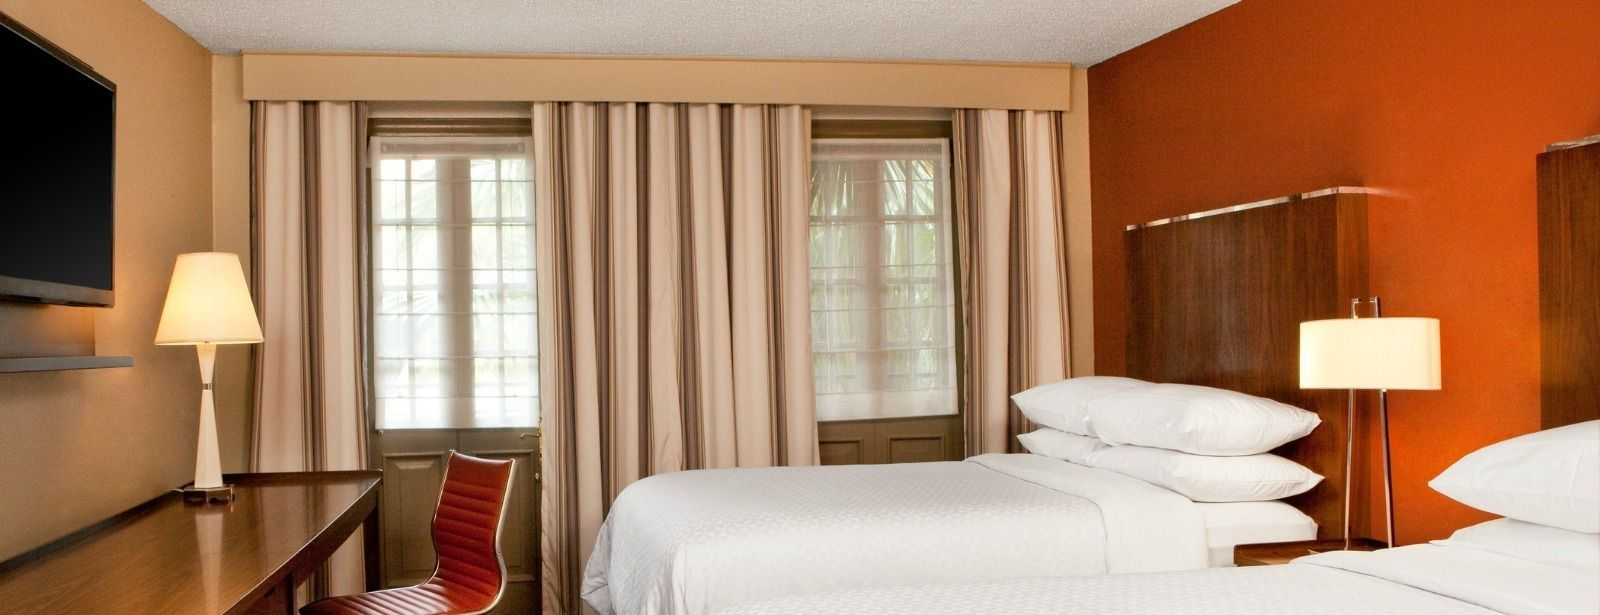 French Quarter Guest Rooms - Double Guest Room